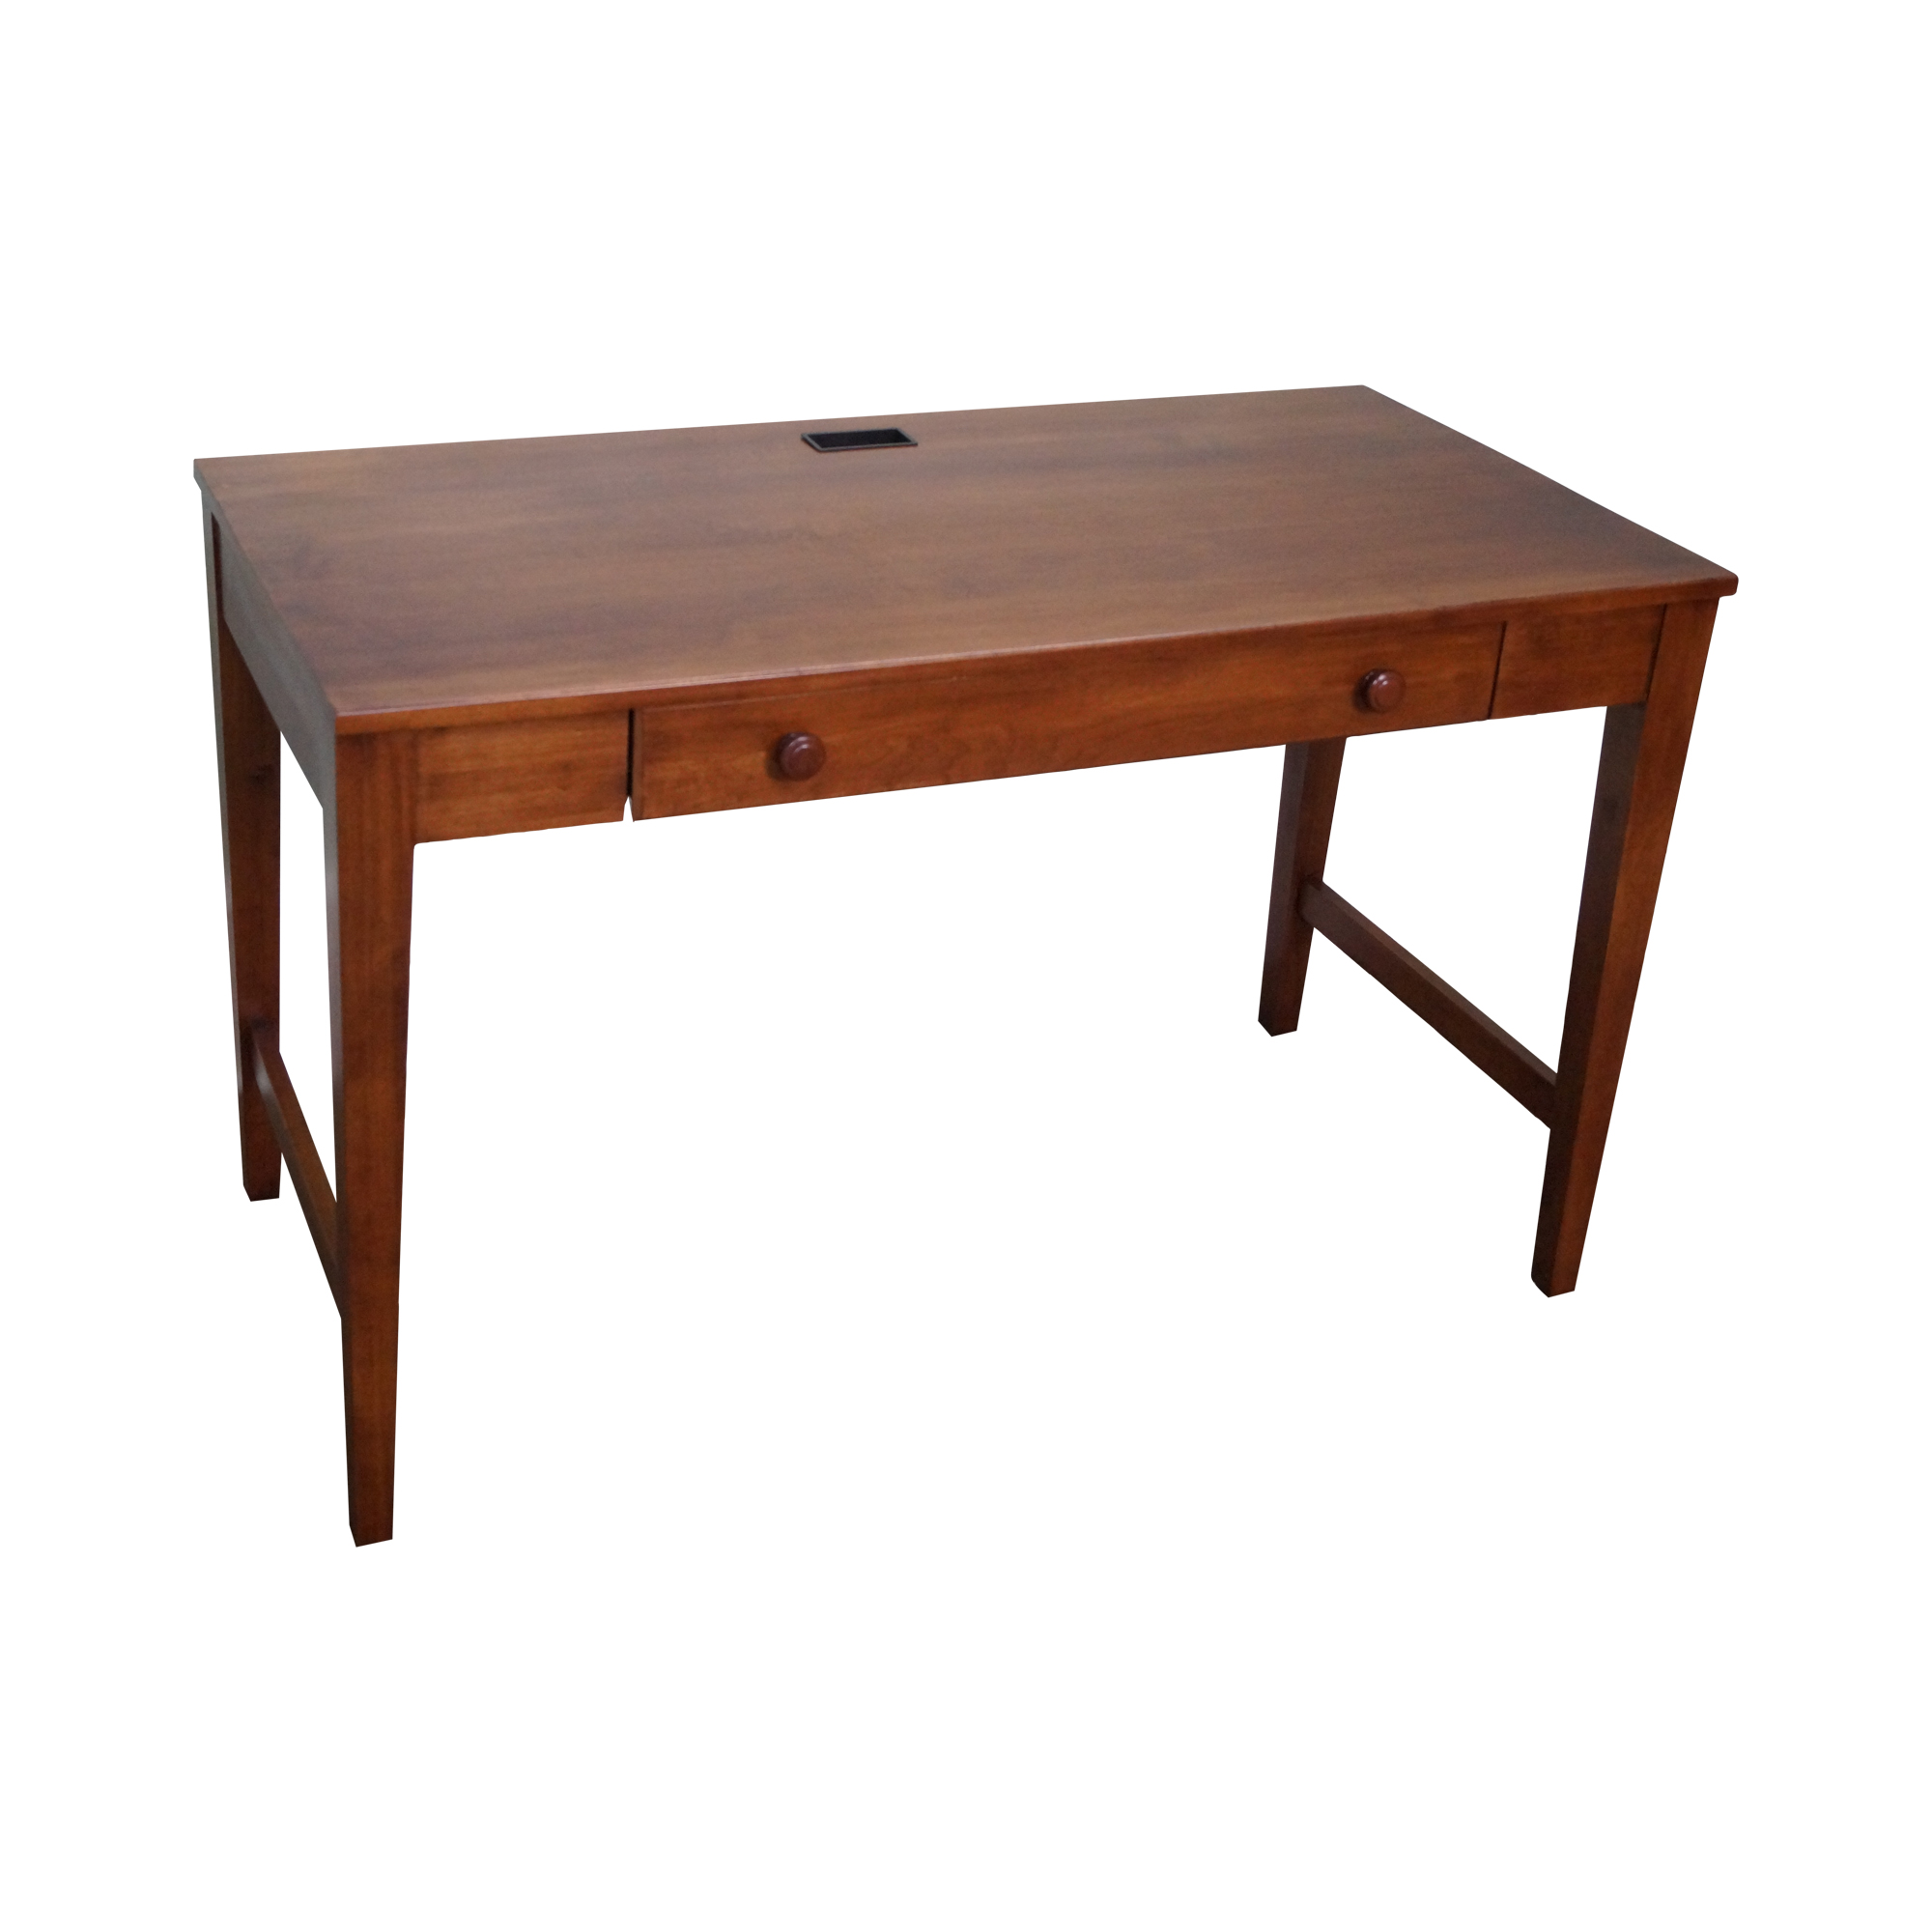 Ethan Allen Country Colors Coffee Table: Ethan Allen Country Colors Maple Computer Desk